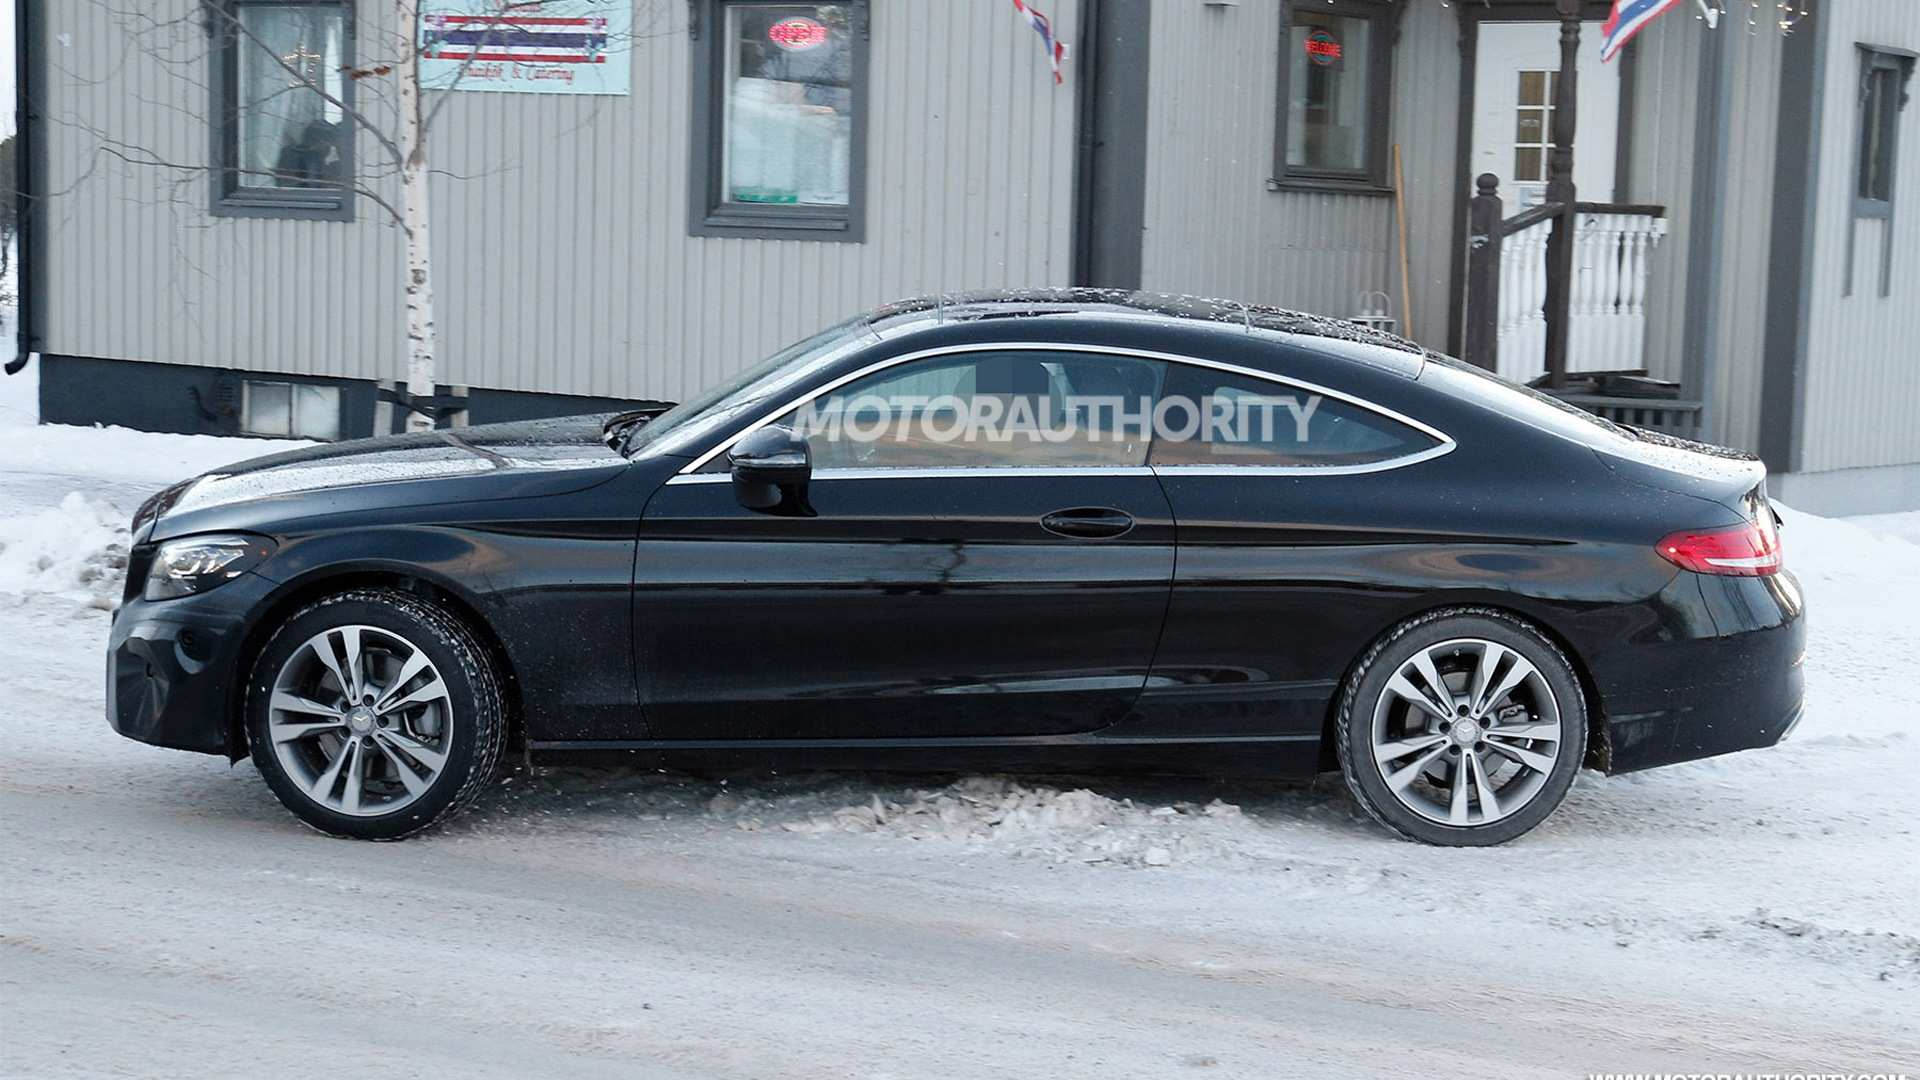 52 The 2020 Mercedes Benz C Class Style